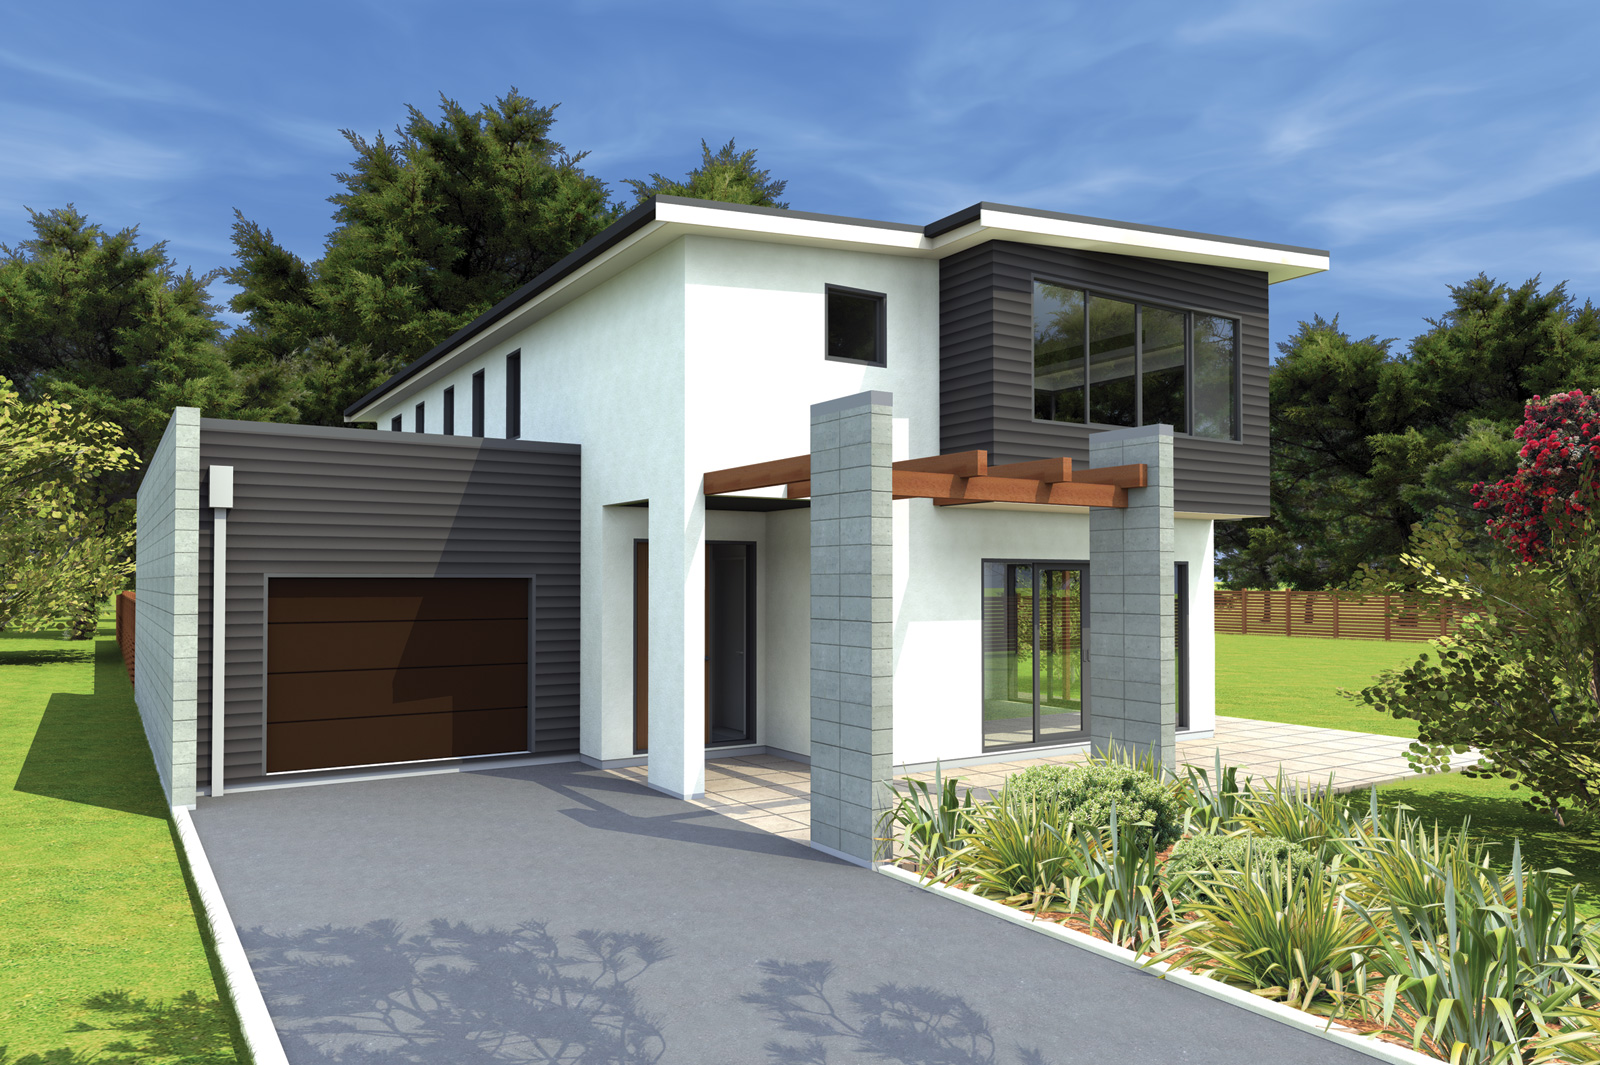 New home designs latest new modern homes designs new for Latest house designs